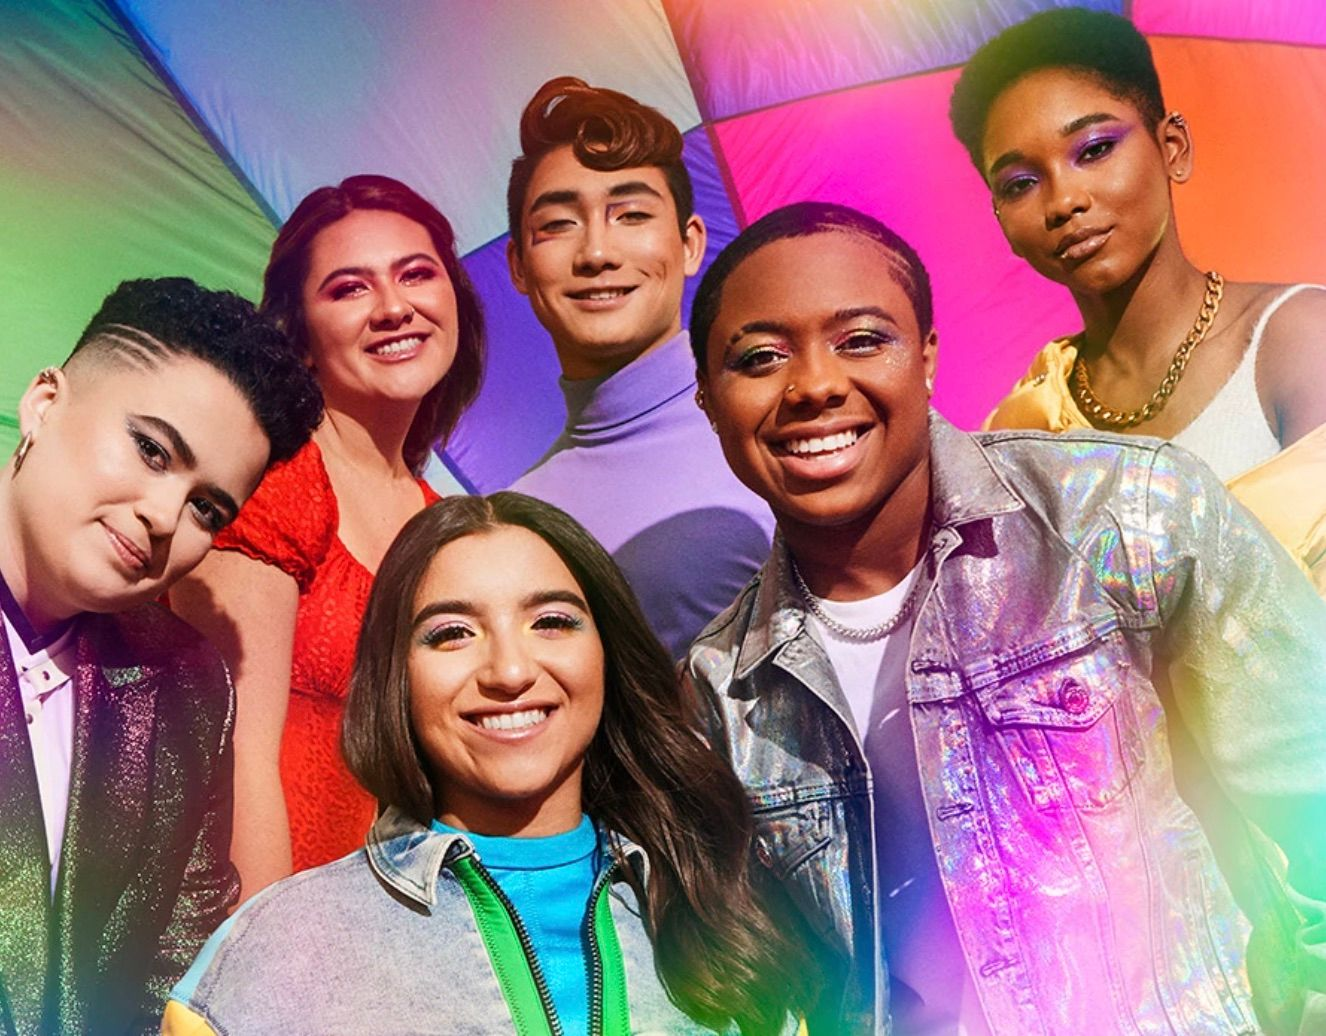 FREE TO BE YOU: Meet the Morphe student squad